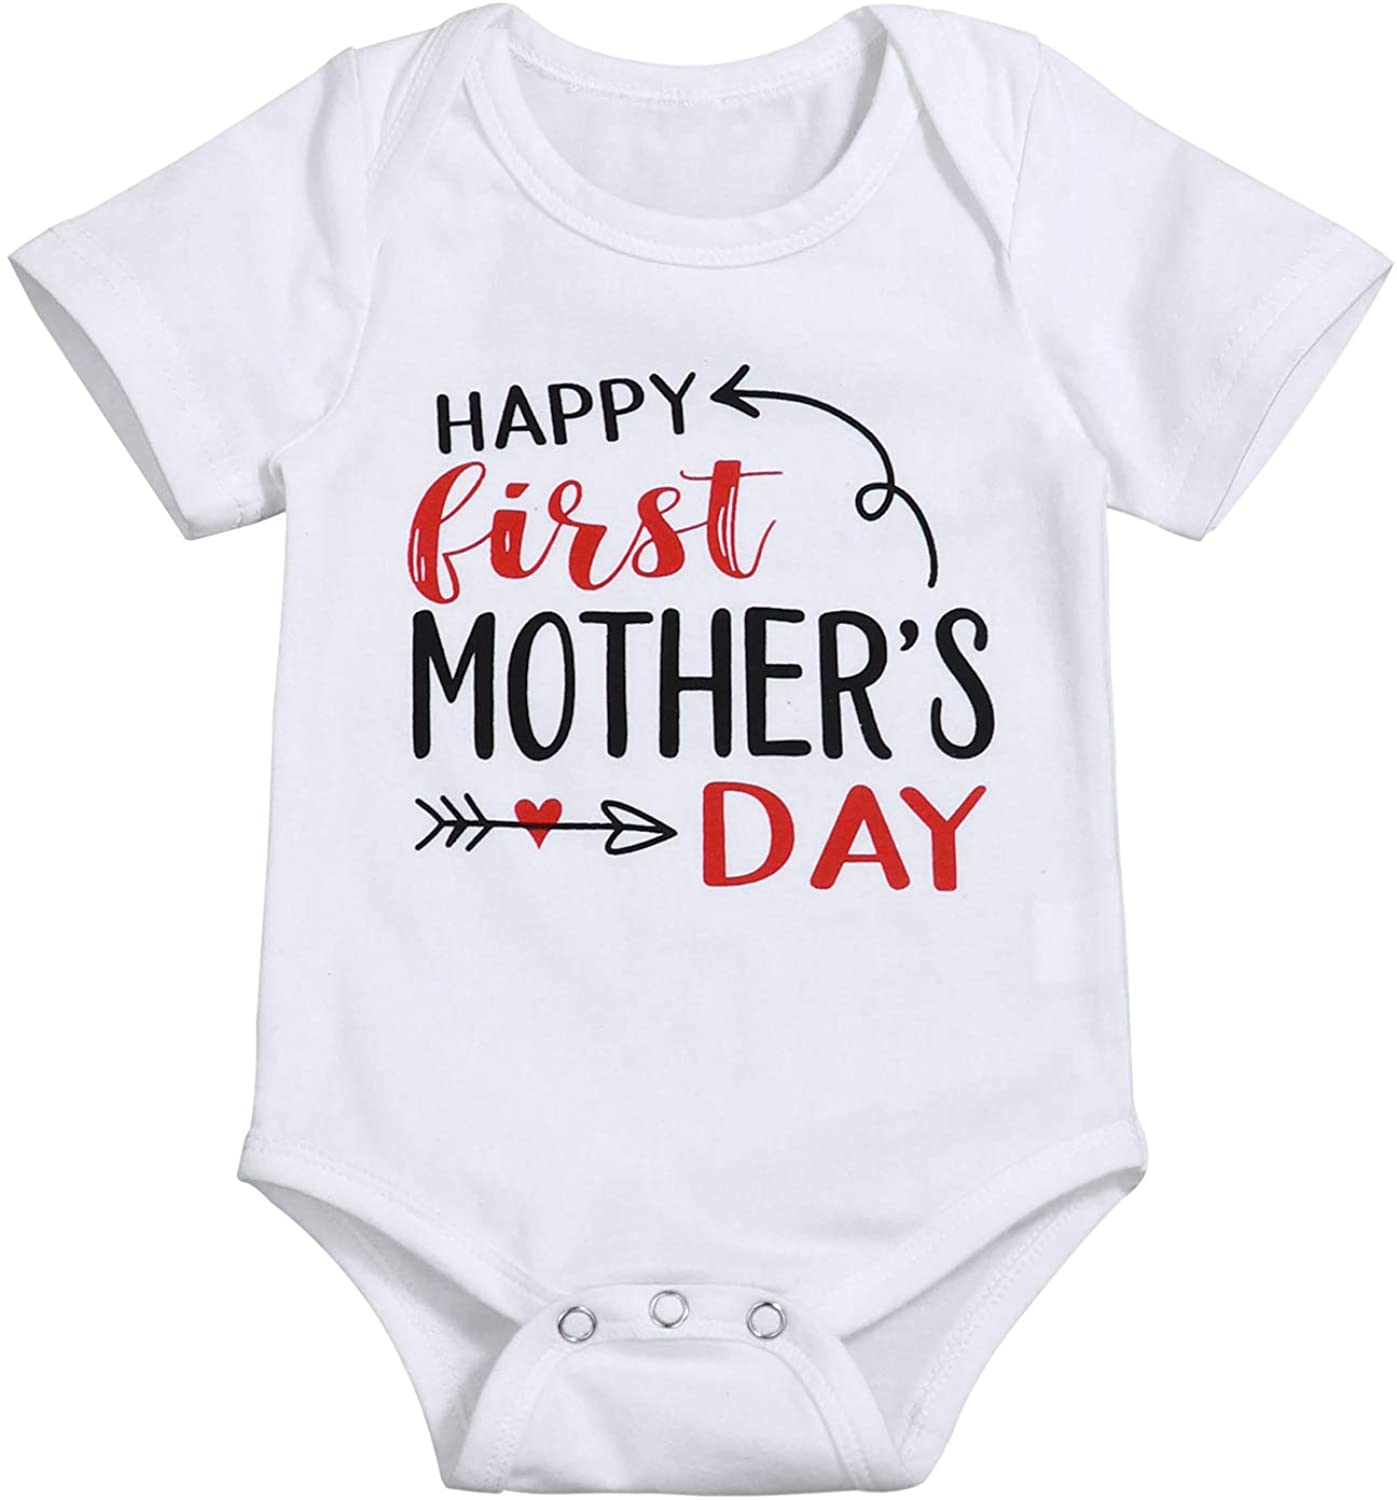 Happy 1st Mothers Day Outfit Newborn Infant Baby boy Girl Clothes Short Sleeve Romper Bodysuit Onesie